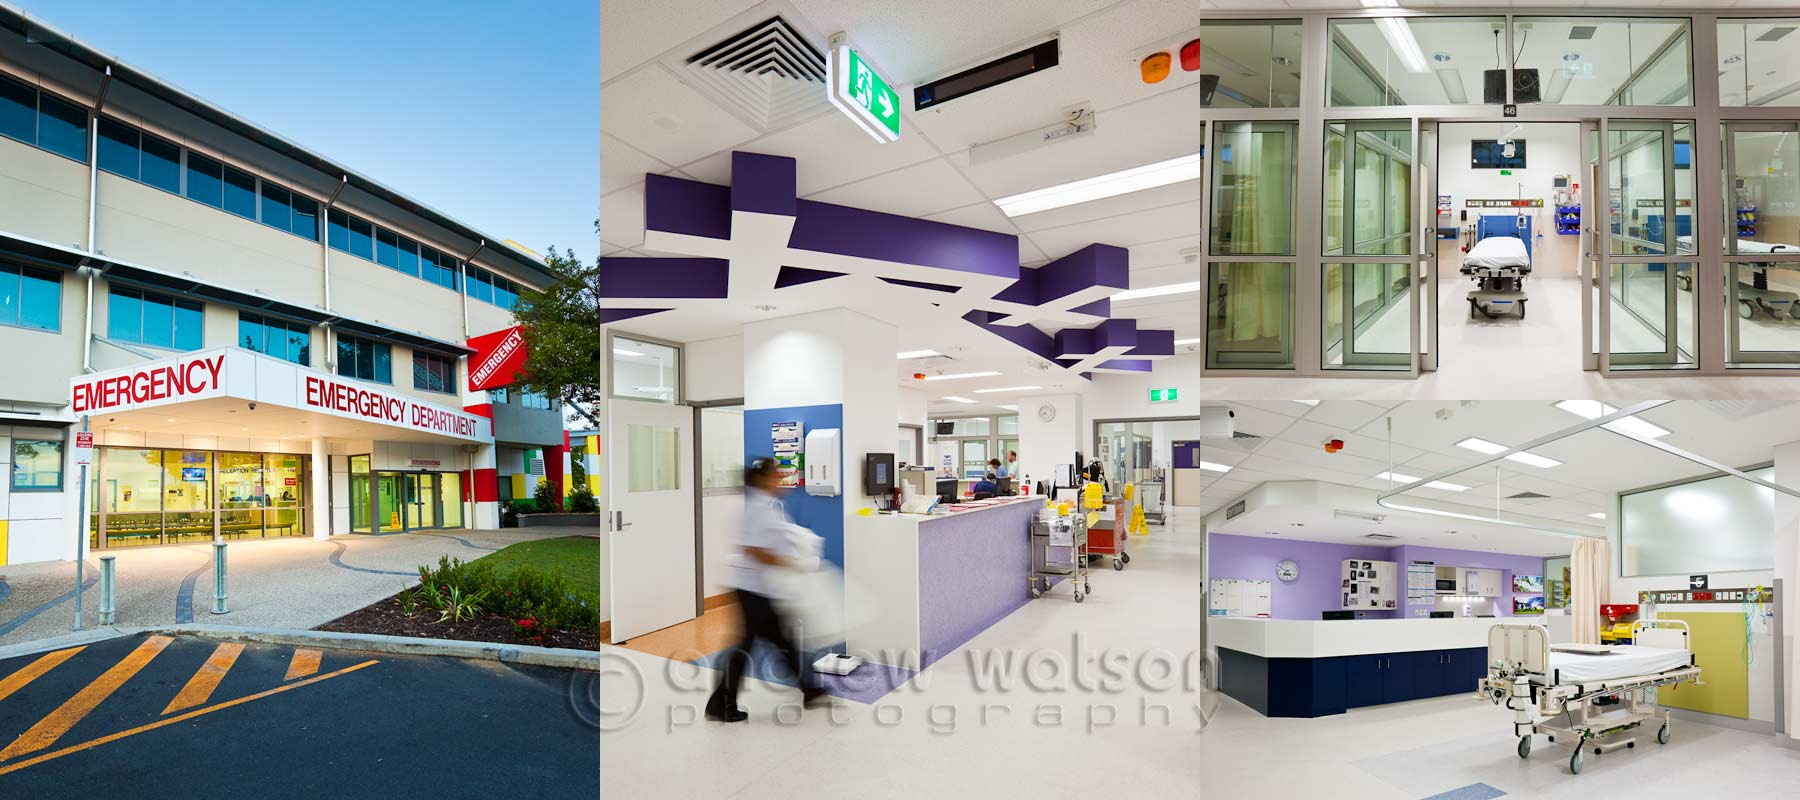 Architecture Photography - Cairns Base Hospital Emergency Department